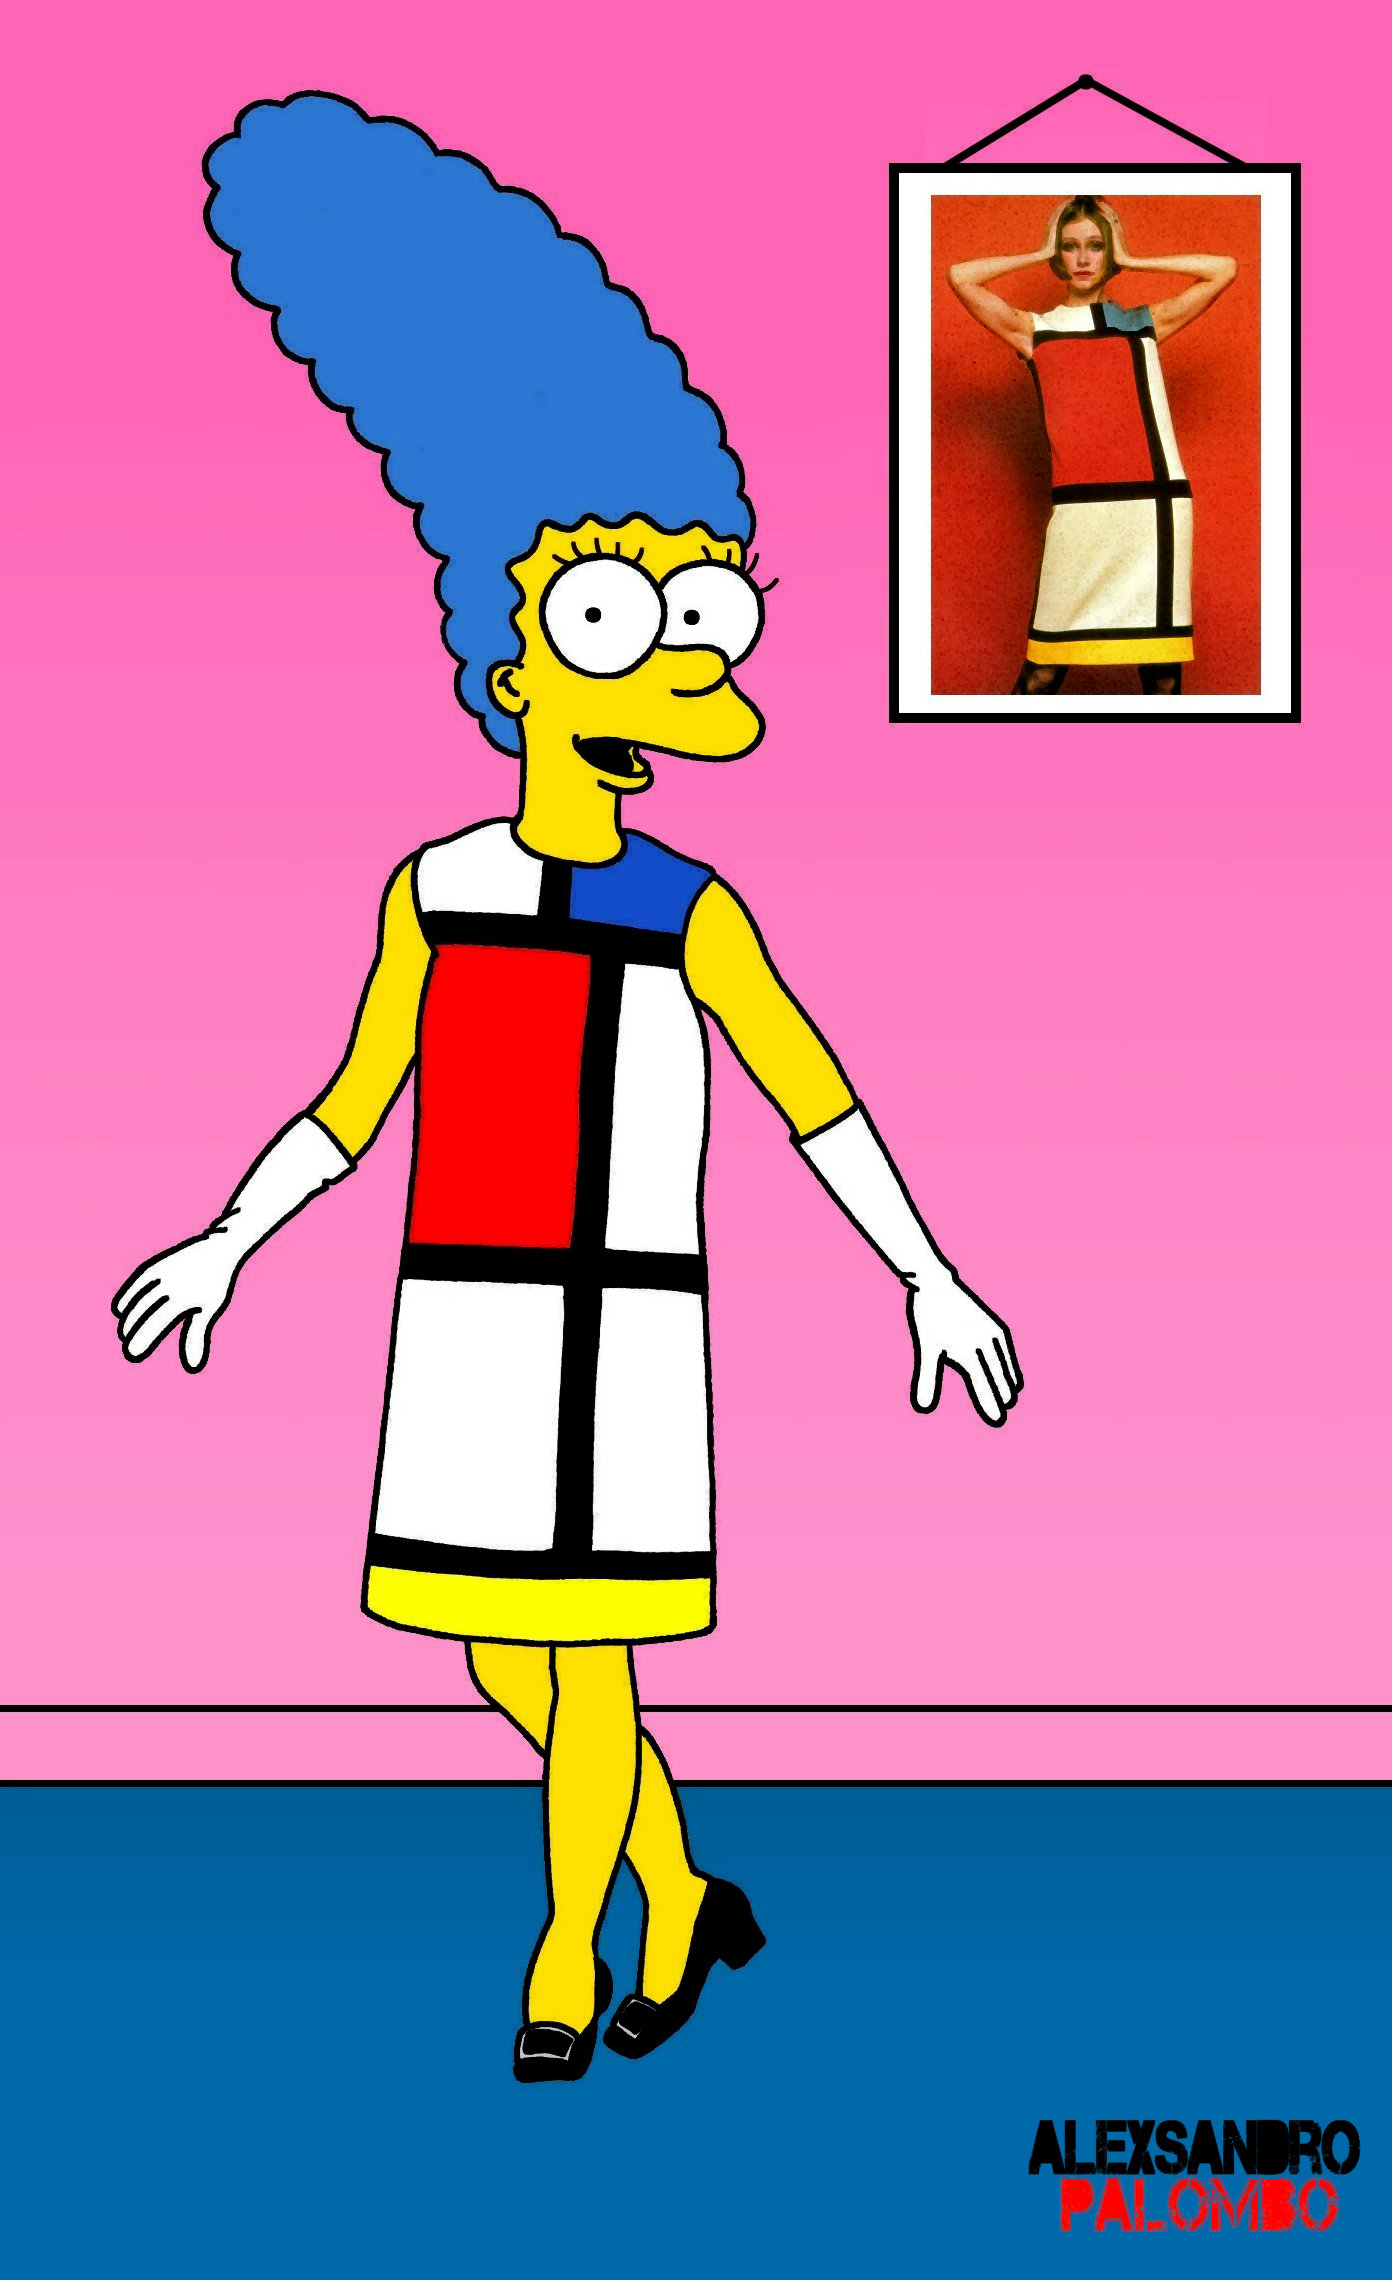 "On February 12th the Yves Saint-Laurent Museum in Paris inaugurated an exhibition with the iconic clothes of Yves Saint-Laurent and Mondrian where you will find Palombo's ""Marge Simpson in Mondrian"", a work of 2012."